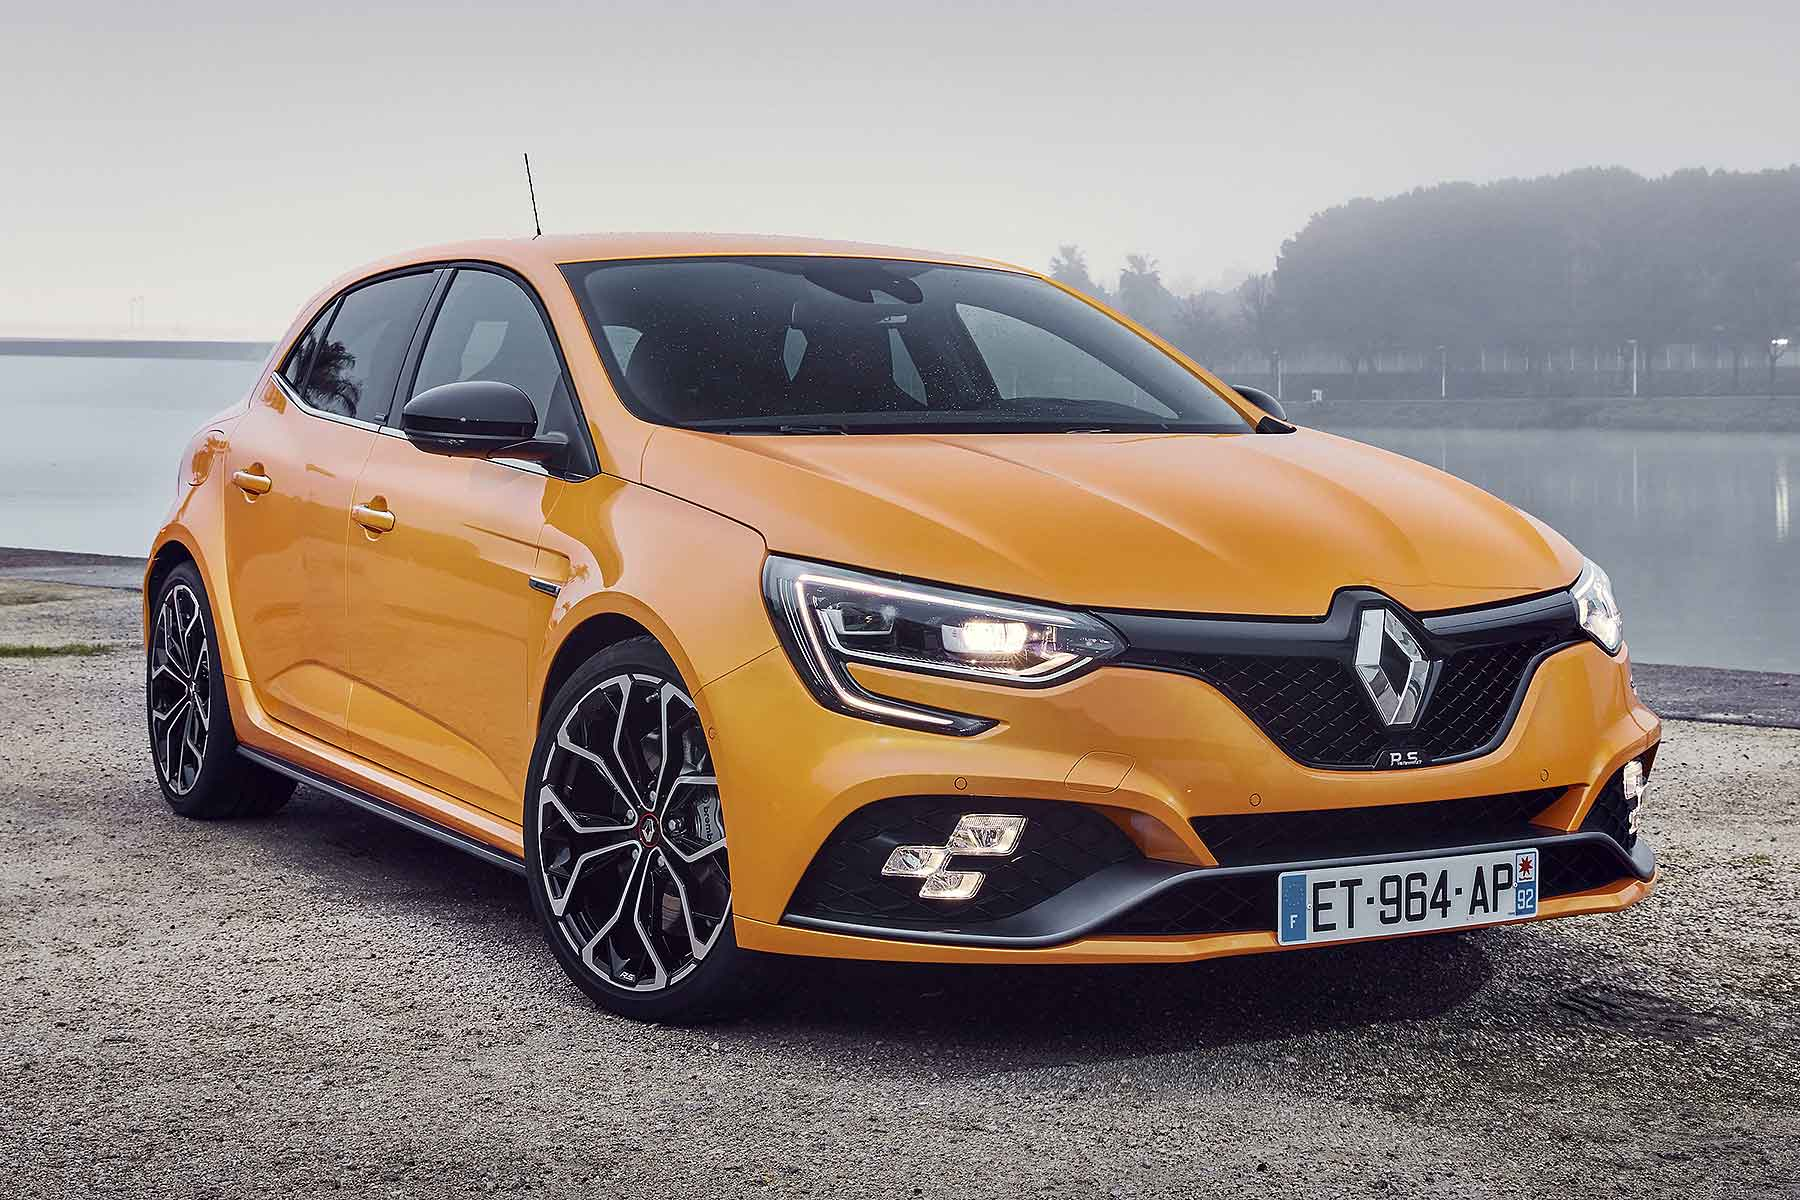 new 2018 renault megane r s prices from 27 495 motoring research. Black Bedroom Furniture Sets. Home Design Ideas